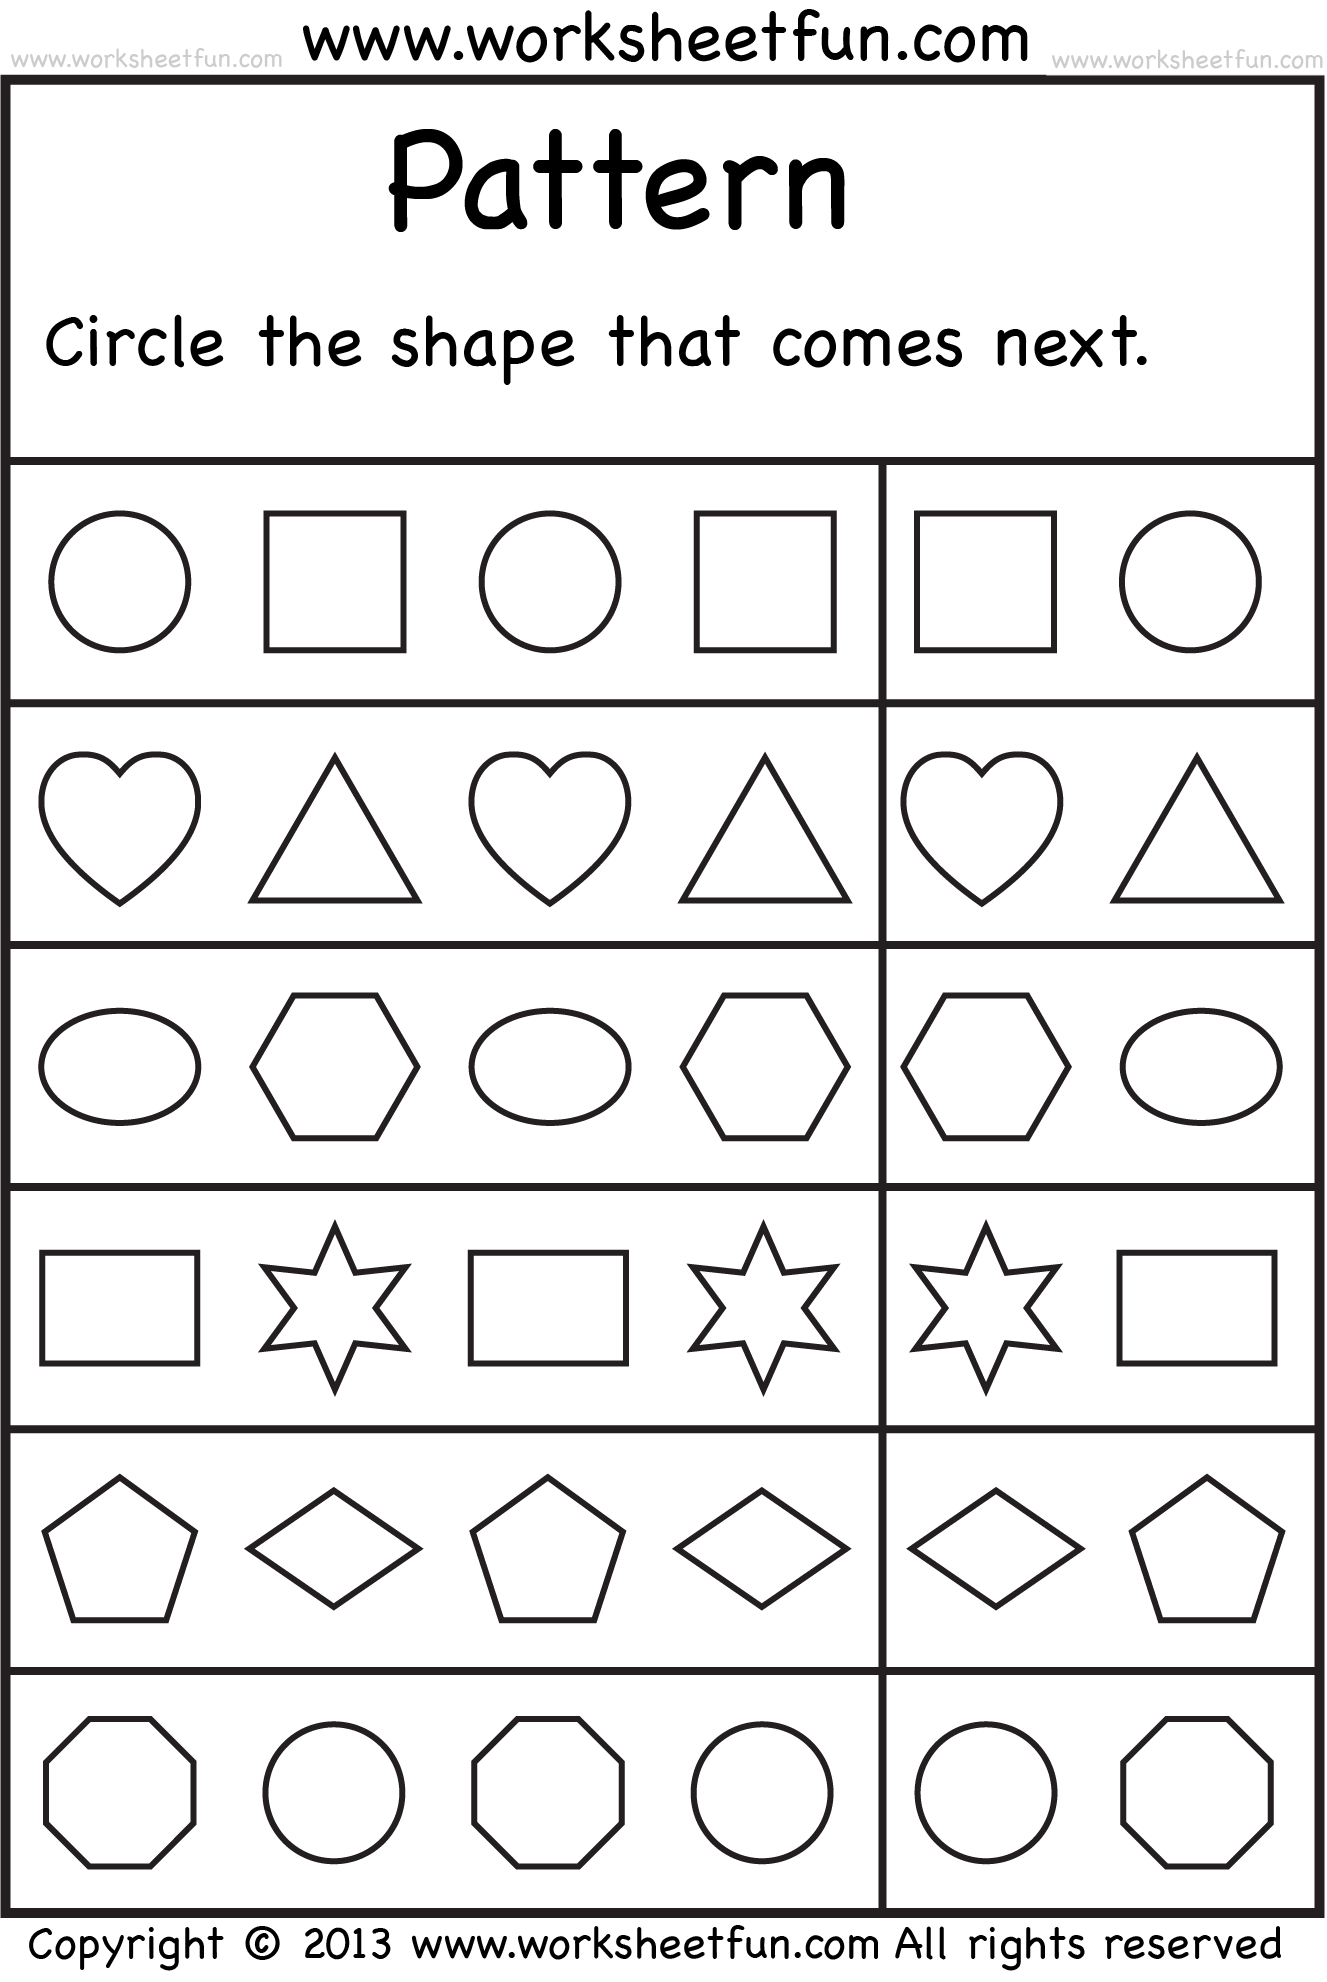 Weirdmailus  Unique  Images About School Worksheets On Pinterest  Number Words  With Extraordinary  Images About School Worksheets On Pinterest  Number Words Alphabet Worksheets And Free Printable Kindergarten Worksheets With Charming Kids Preschool Worksheets Also Multiplying  Digit By  Digit Worksheets In Addition Handwriting Writing Worksheets And Sorting Materials Worksheet As Well As Punctuation Commas Worksheets Additionally Prefix In Worksheet From Pinterestcom With Weirdmailus  Extraordinary  Images About School Worksheets On Pinterest  Number Words  With Charming  Images About School Worksheets On Pinterest  Number Words Alphabet Worksheets And Free Printable Kindergarten Worksheets And Unique Kids Preschool Worksheets Also Multiplying  Digit By  Digit Worksheets In Addition Handwriting Writing Worksheets From Pinterestcom